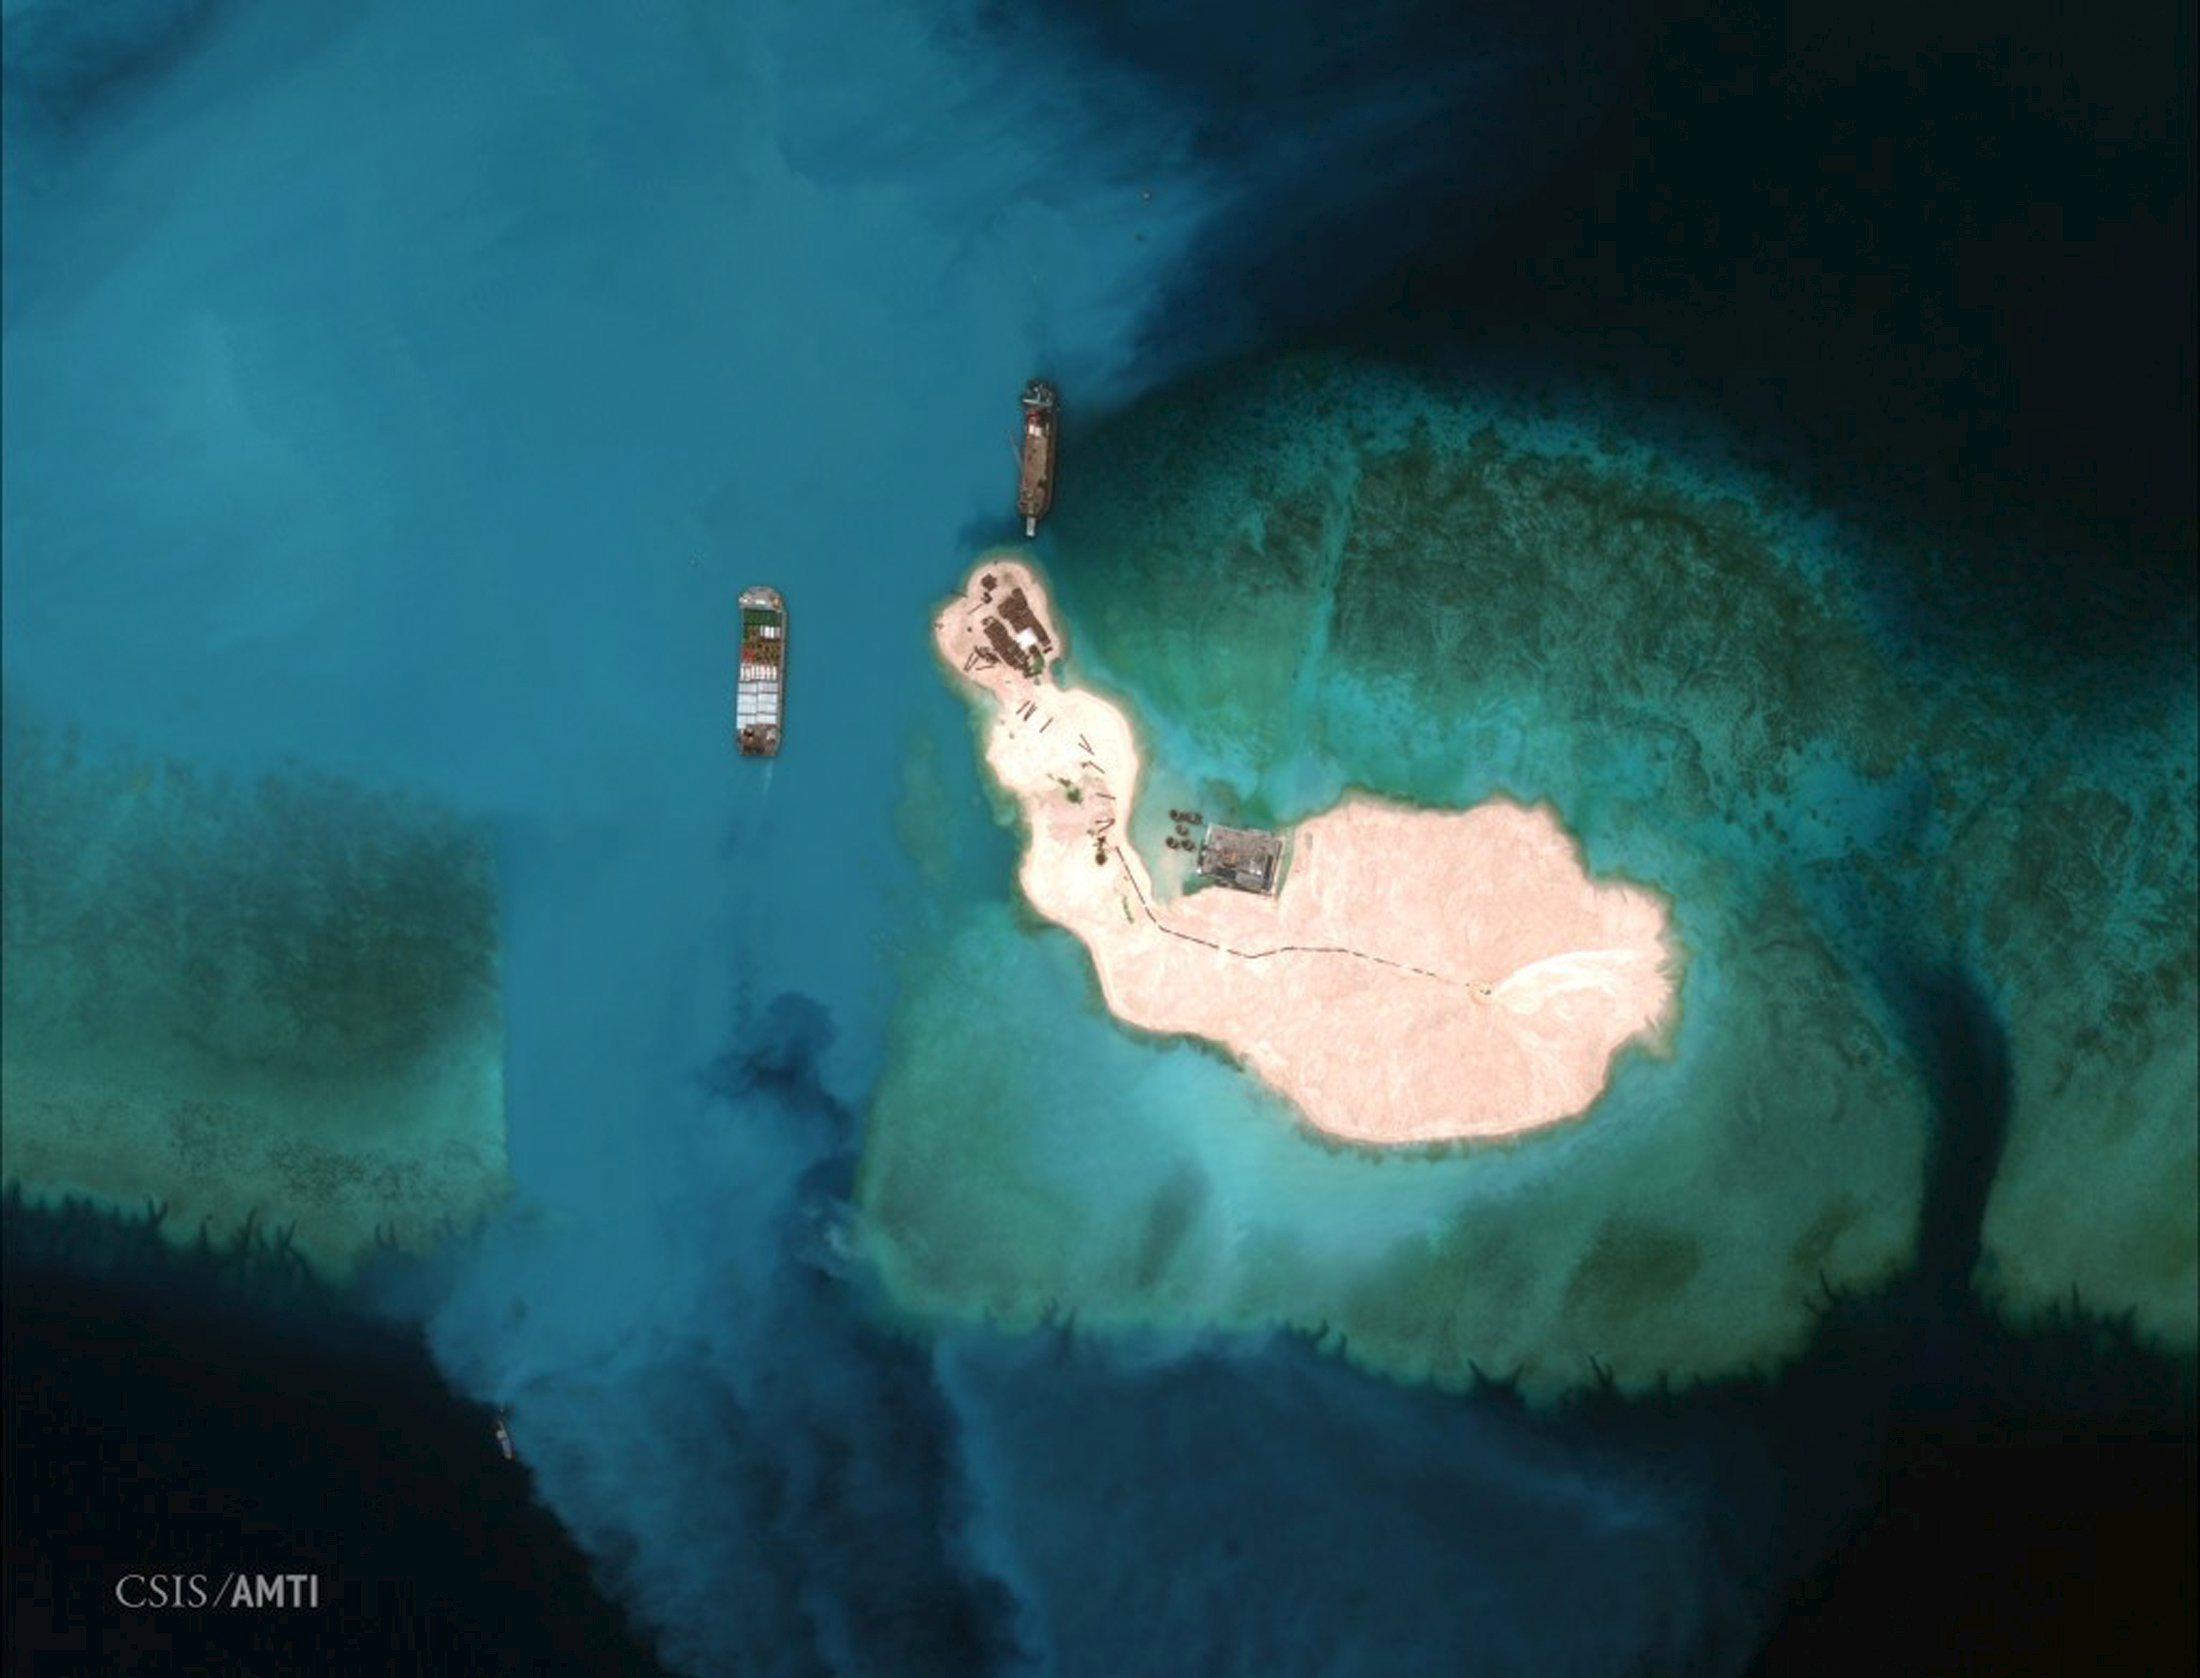 2015-04-10T084843Z_2_LYNXMPEB380XB_RTROPTP_4_CHINA-SOUTHCHINASEA-REEF